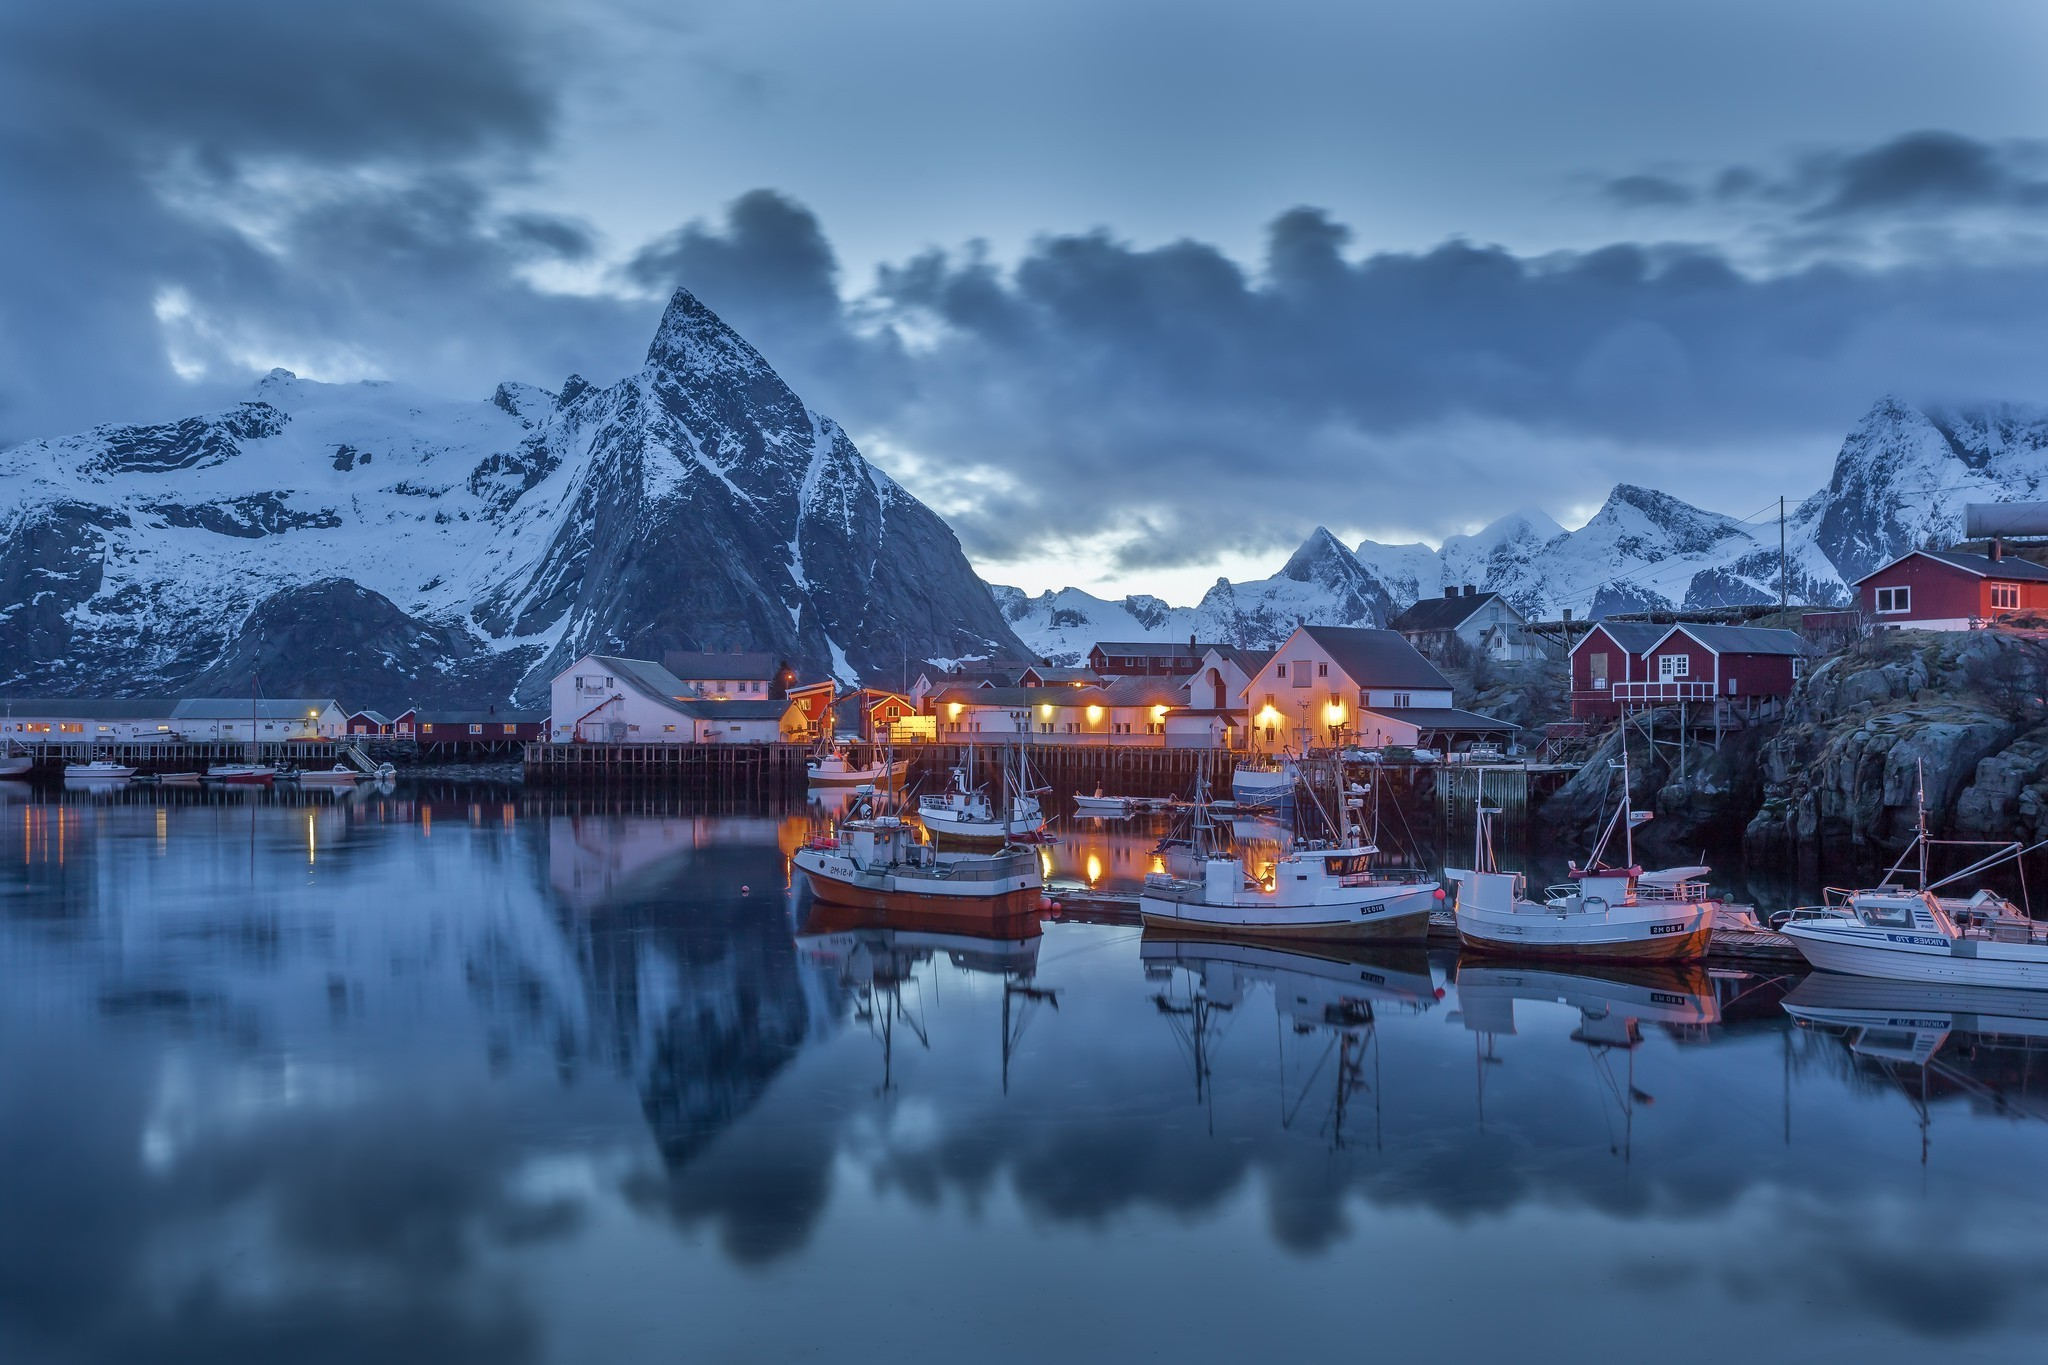 Free Photos Of Houses Norway Wallpapers 68 Images